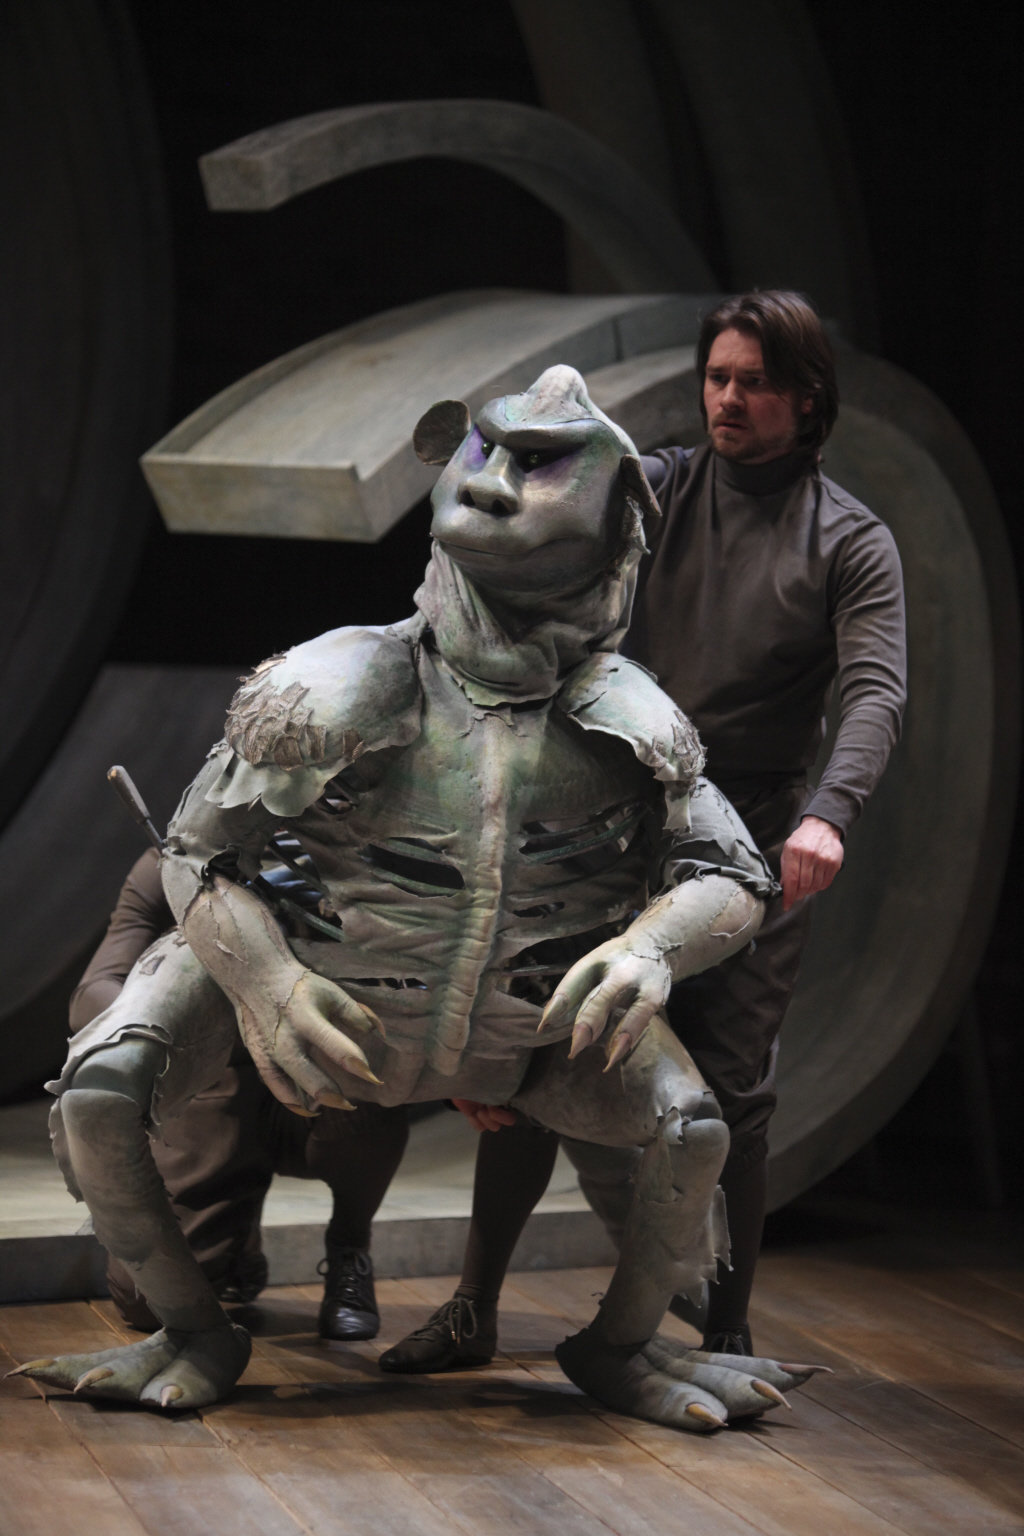 A man works a puppet of Caliban.